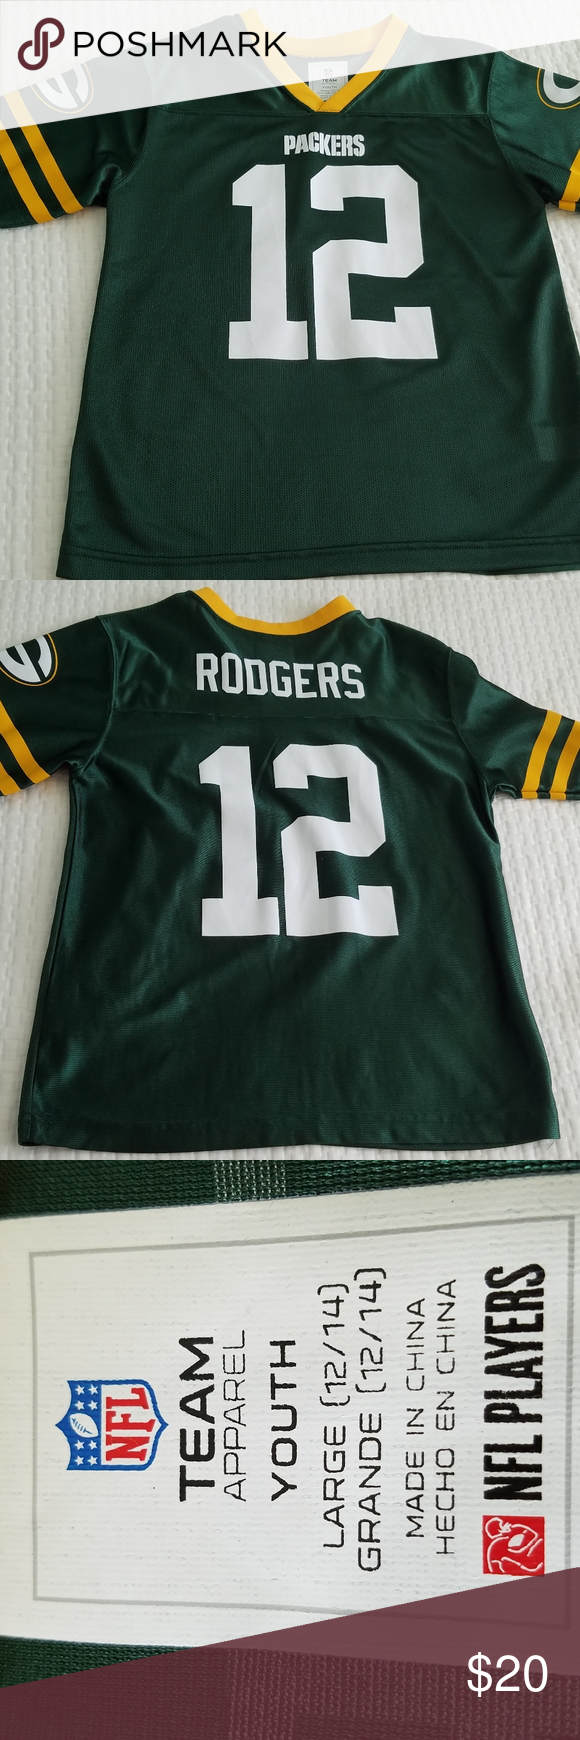 Green Bay Packers Aaron Rodgers Jersey Nfl Team In 2020 Team Apparel Green Bay Packers Green Bay Packers Aaron Rodgers